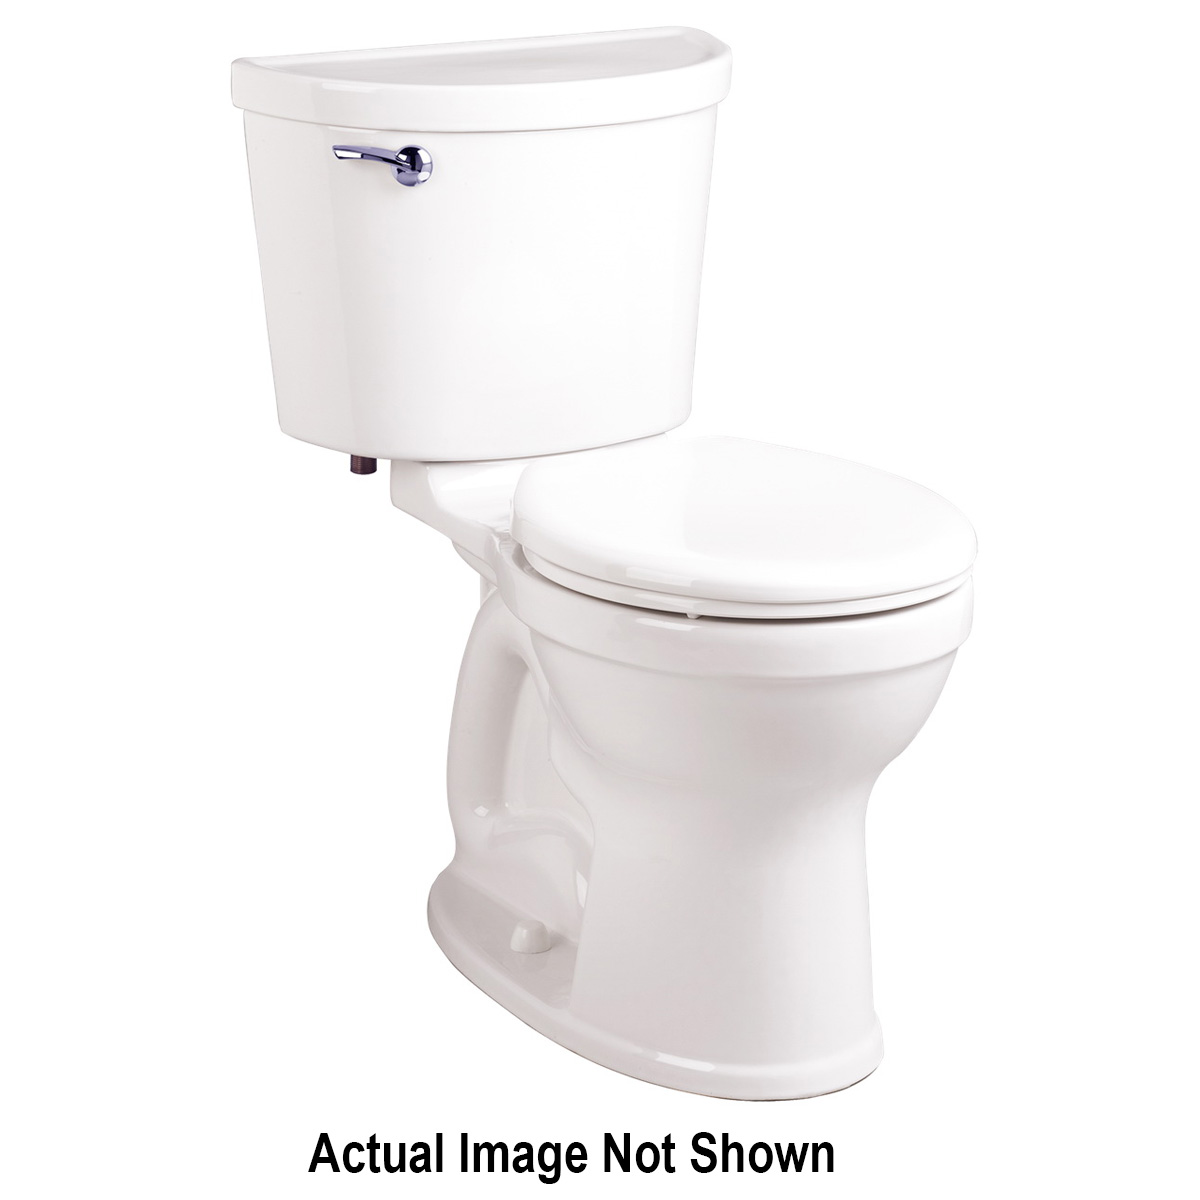 American Standard 3195B101.020 Champion® Pro™ Right Height™ Toilet Bowl, Round Front, 8 x 9 in Water Surface, 16-1/2 in H Rim, 2-3/8 in Trapway, Import